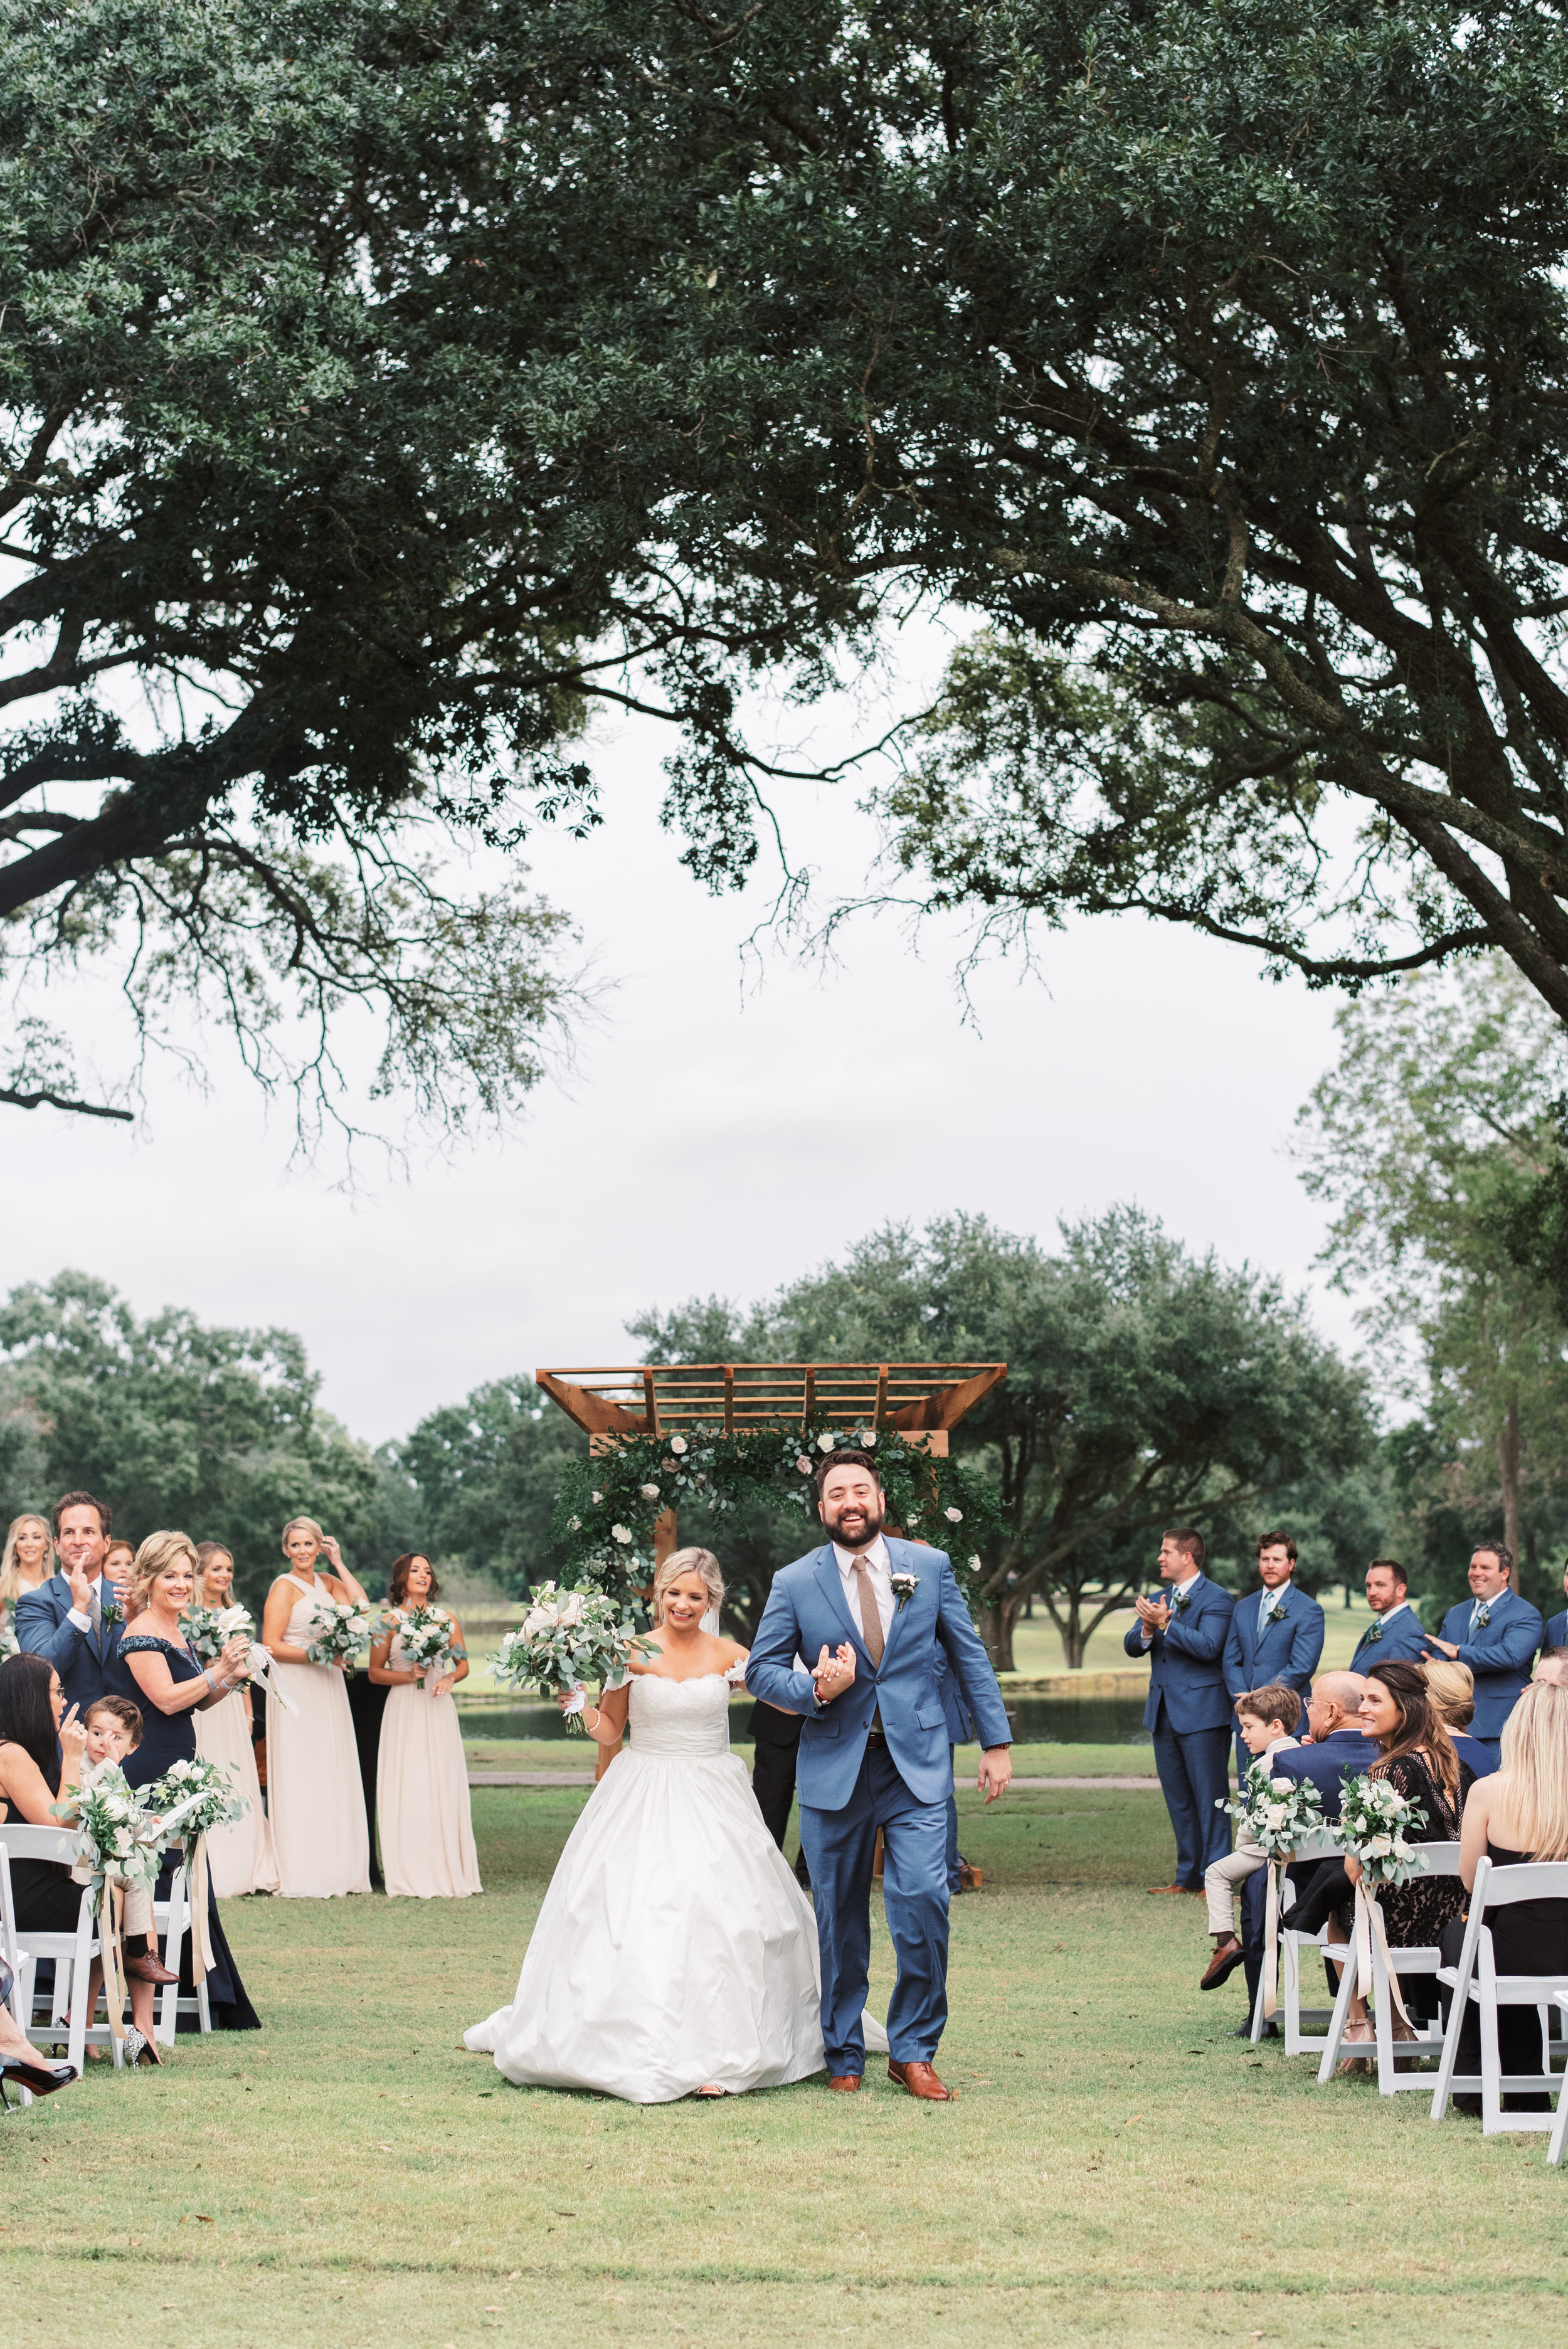 Southern Fete, Southern Wedding, Bride and Groom, Ceremony, Outside Wedding, Sarah Beth Photography